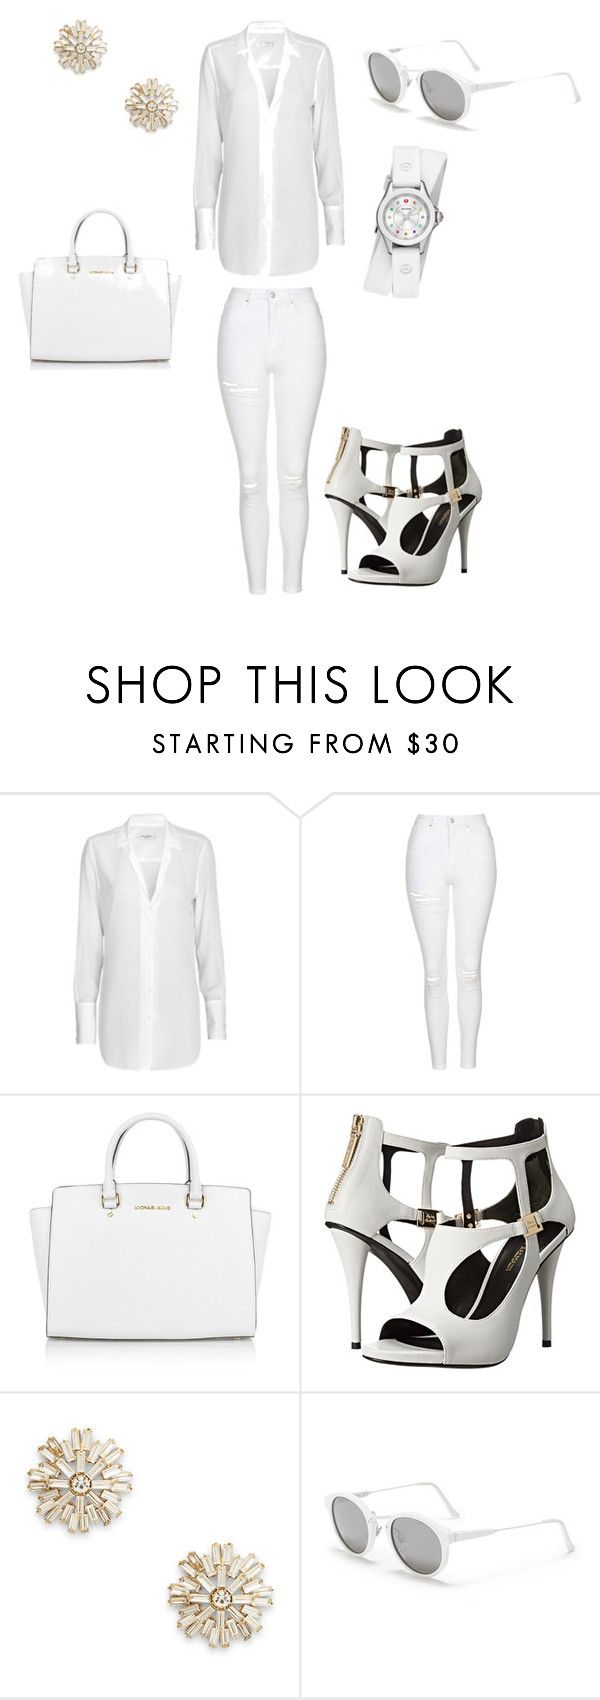 """Untitled #13"" by christinalove99r ❤ liked on Polyvore featuring Equipment, Topshop, Michael Kors, Pierre Balmain, Sole Society, RetroSuperFuture and Michele"